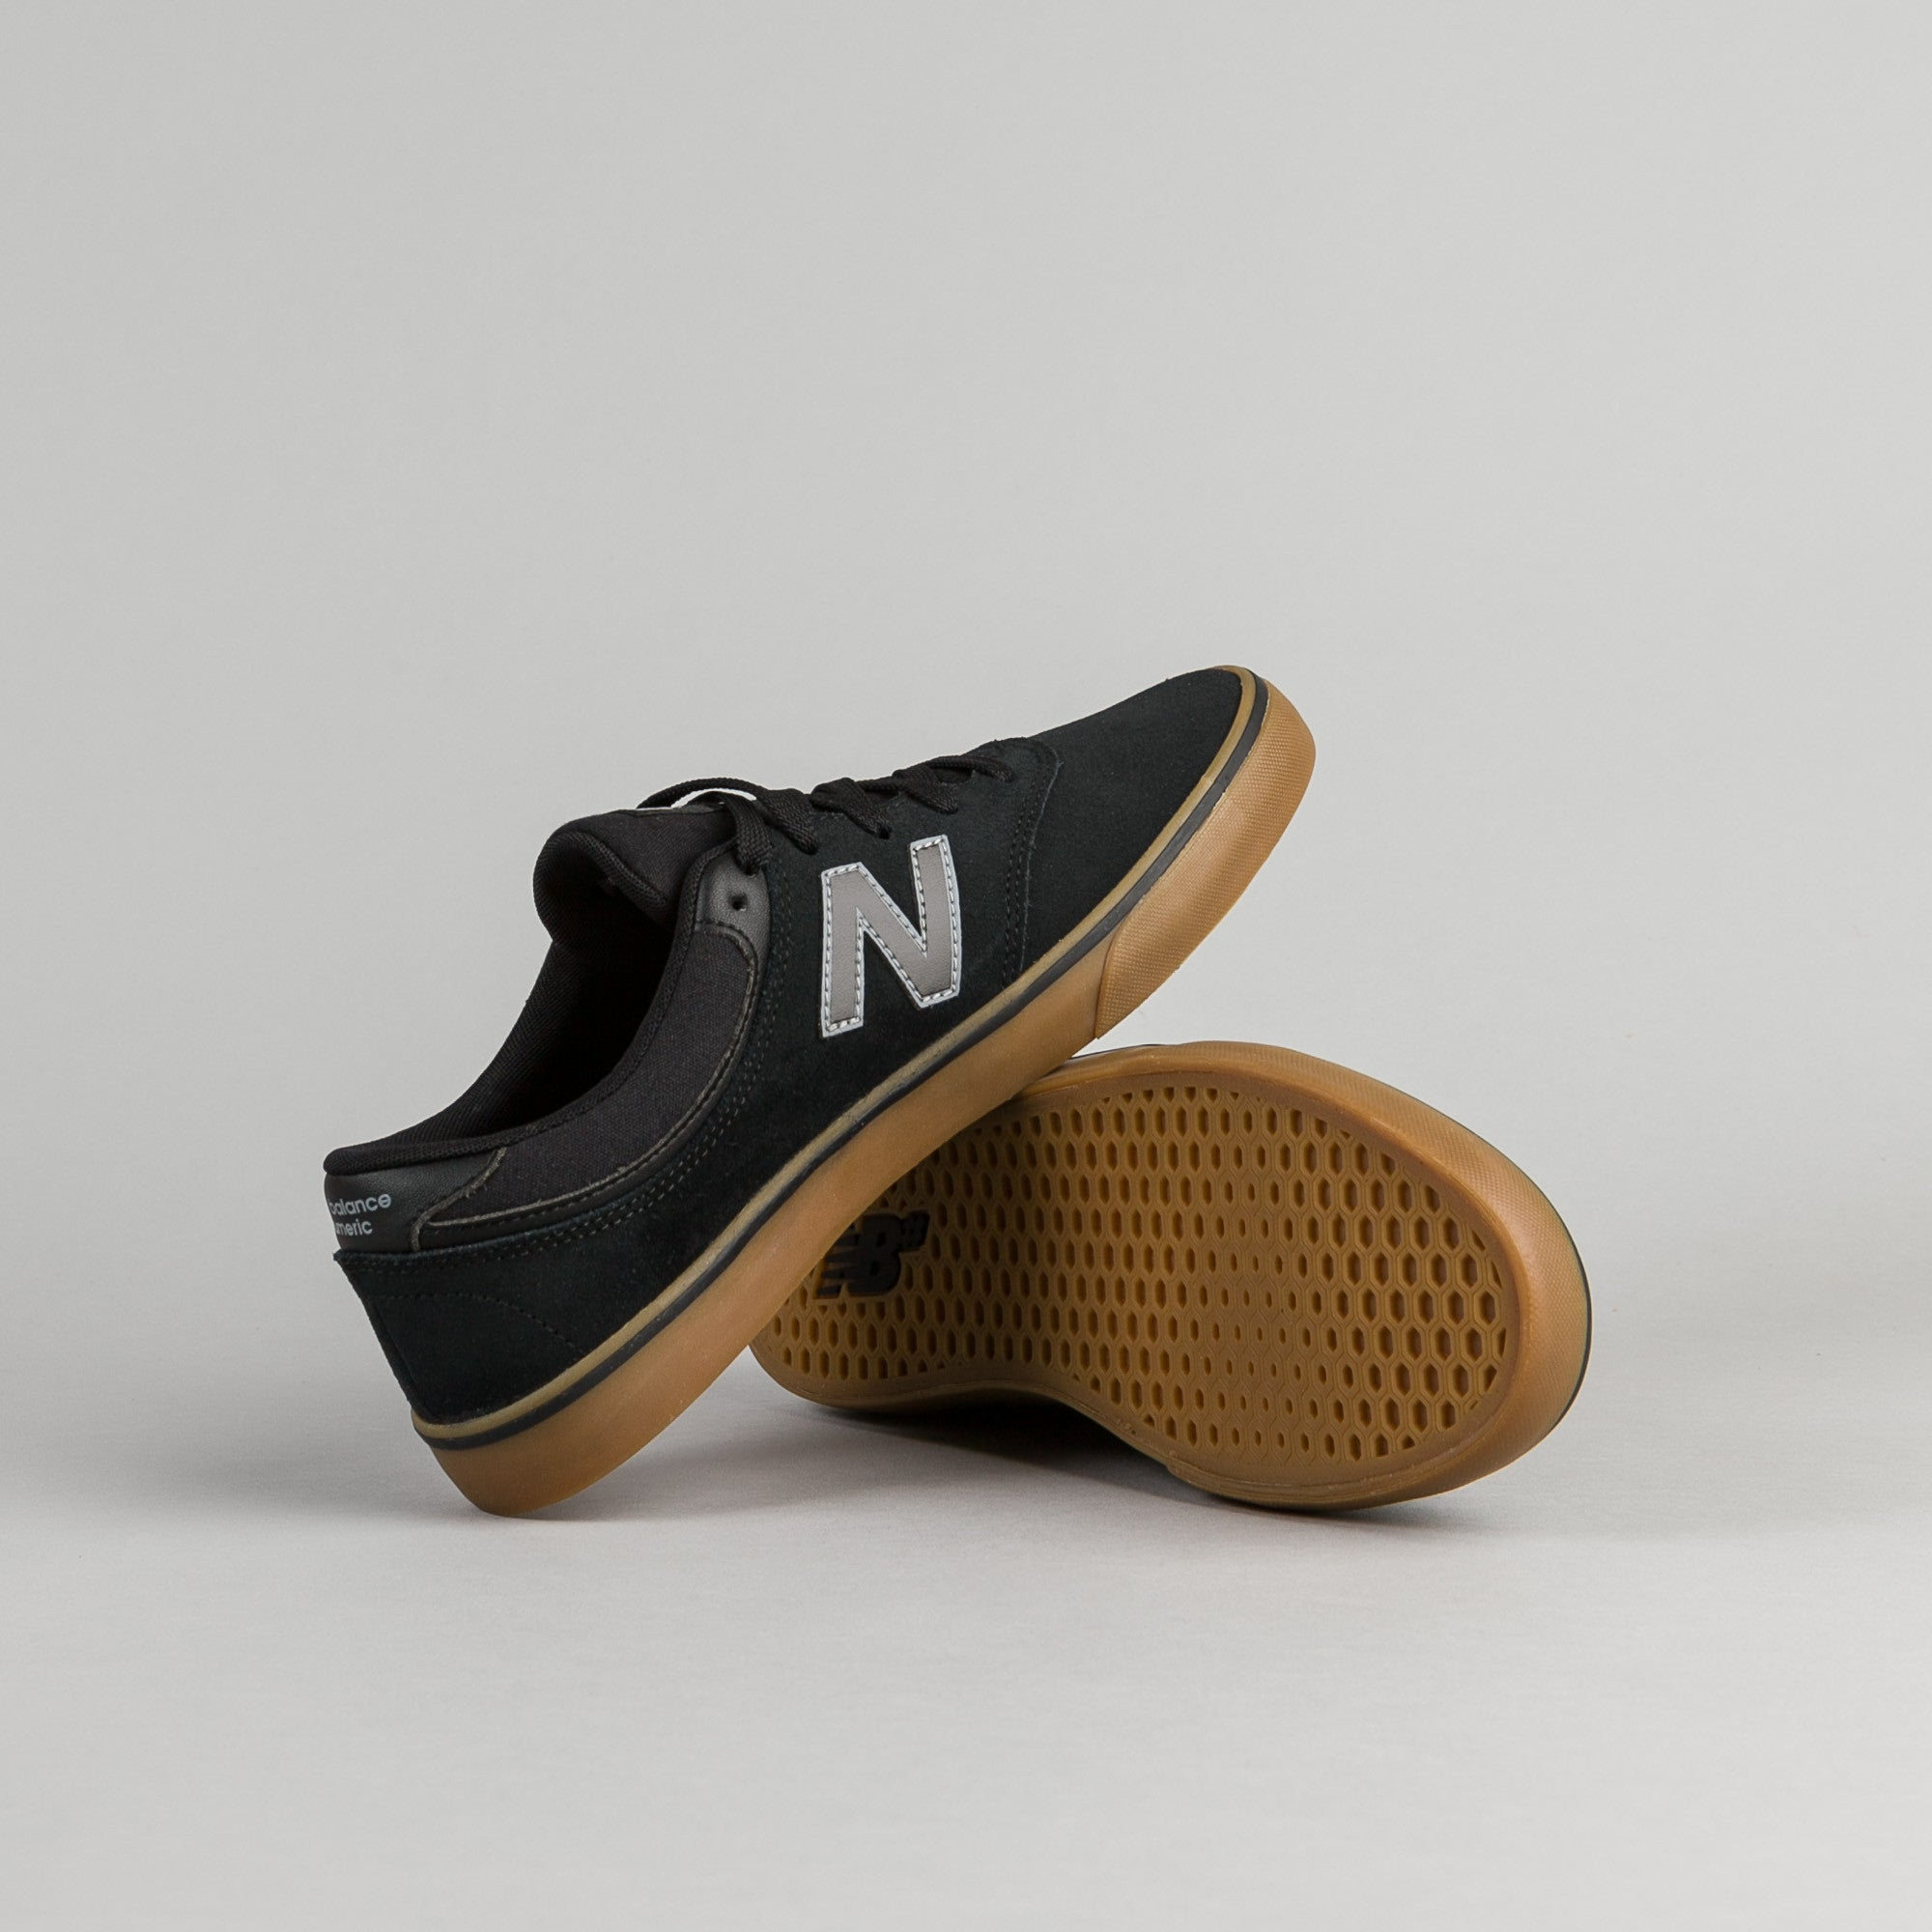 New Balance Numeric Quincy 254 Shoes - Black / Gum